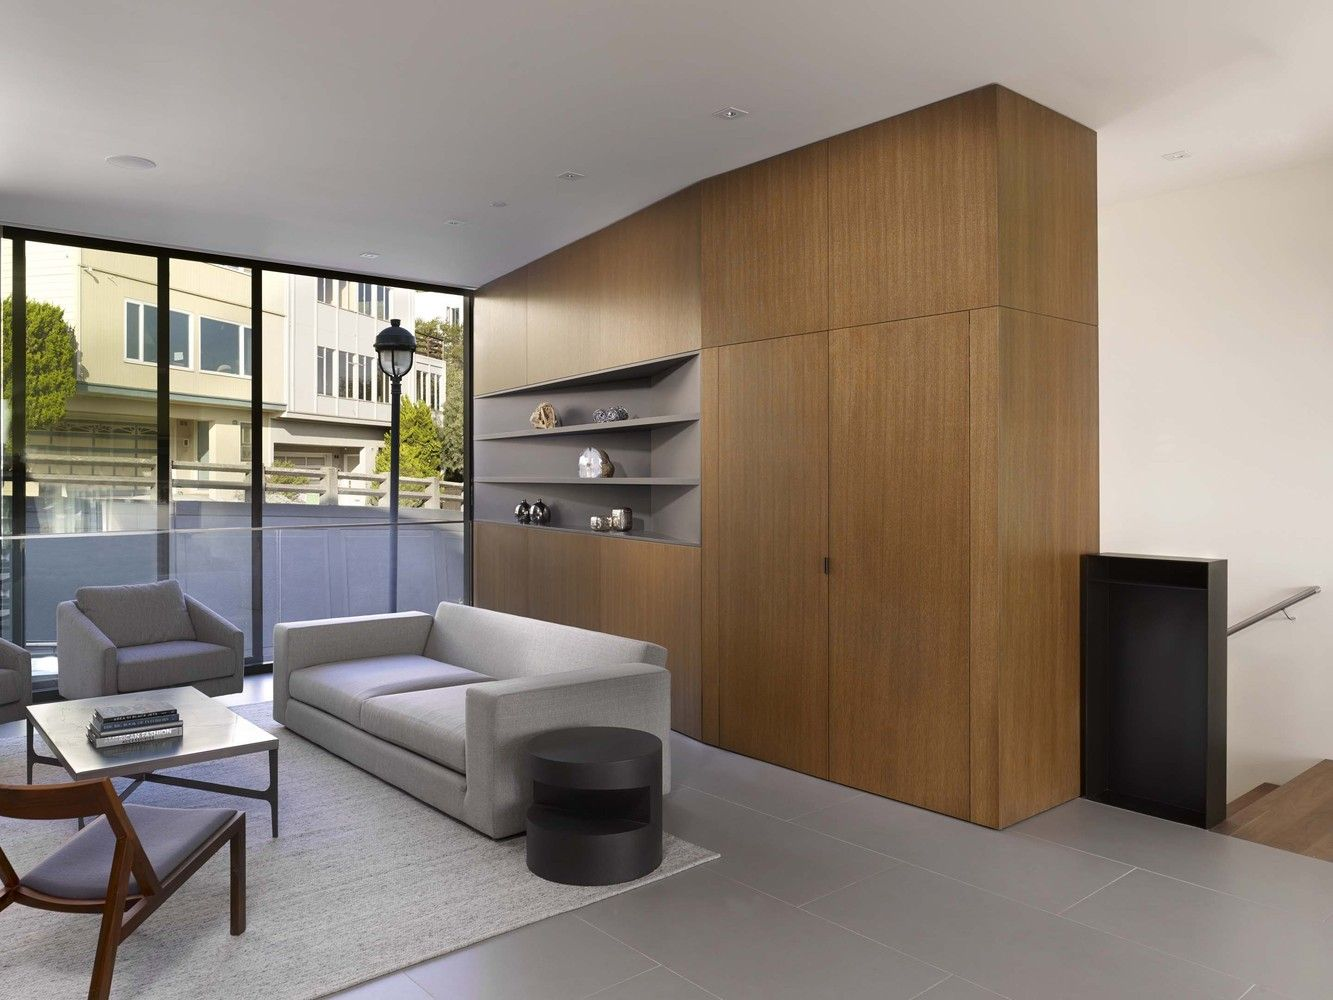 Gallery of Laidley Street Residence / Michael Hennessey Architecture - 8